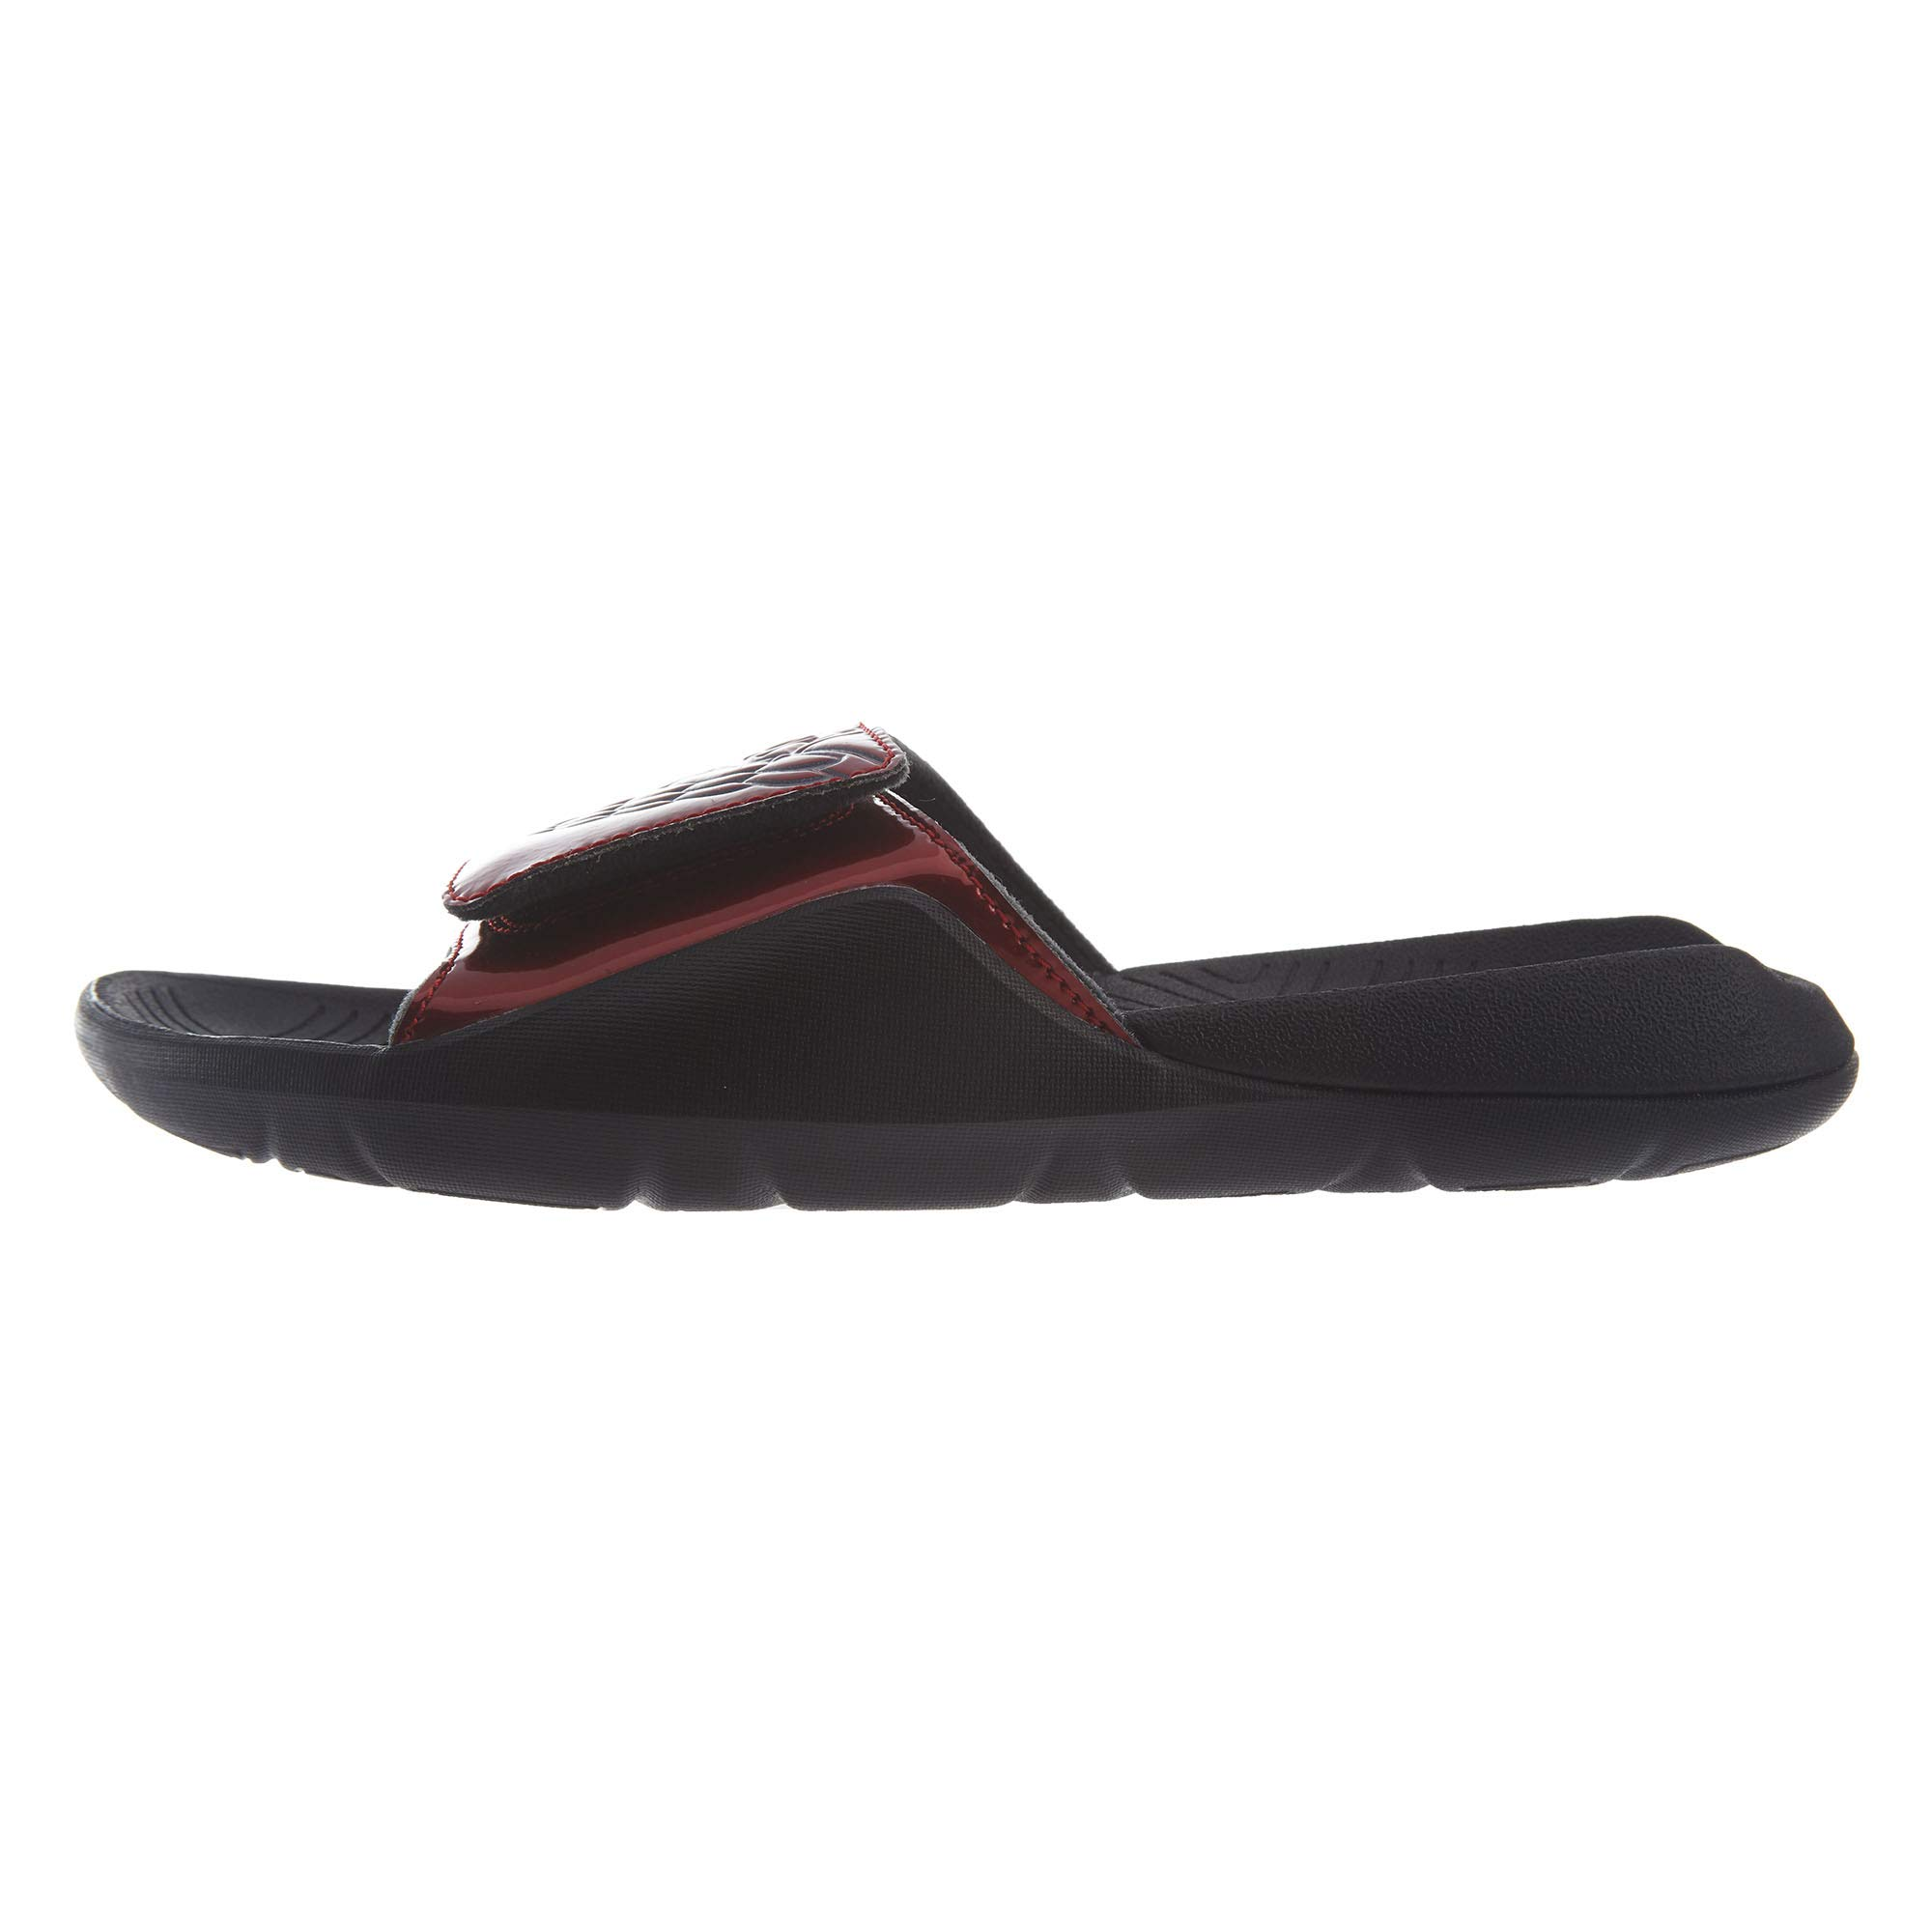 newest 0ffc9 24a8e Galleon - Nike Men s Jordan Hydro 7 Slide Sandals, AA2517 (8 D(M) US, Gym  Red Black)